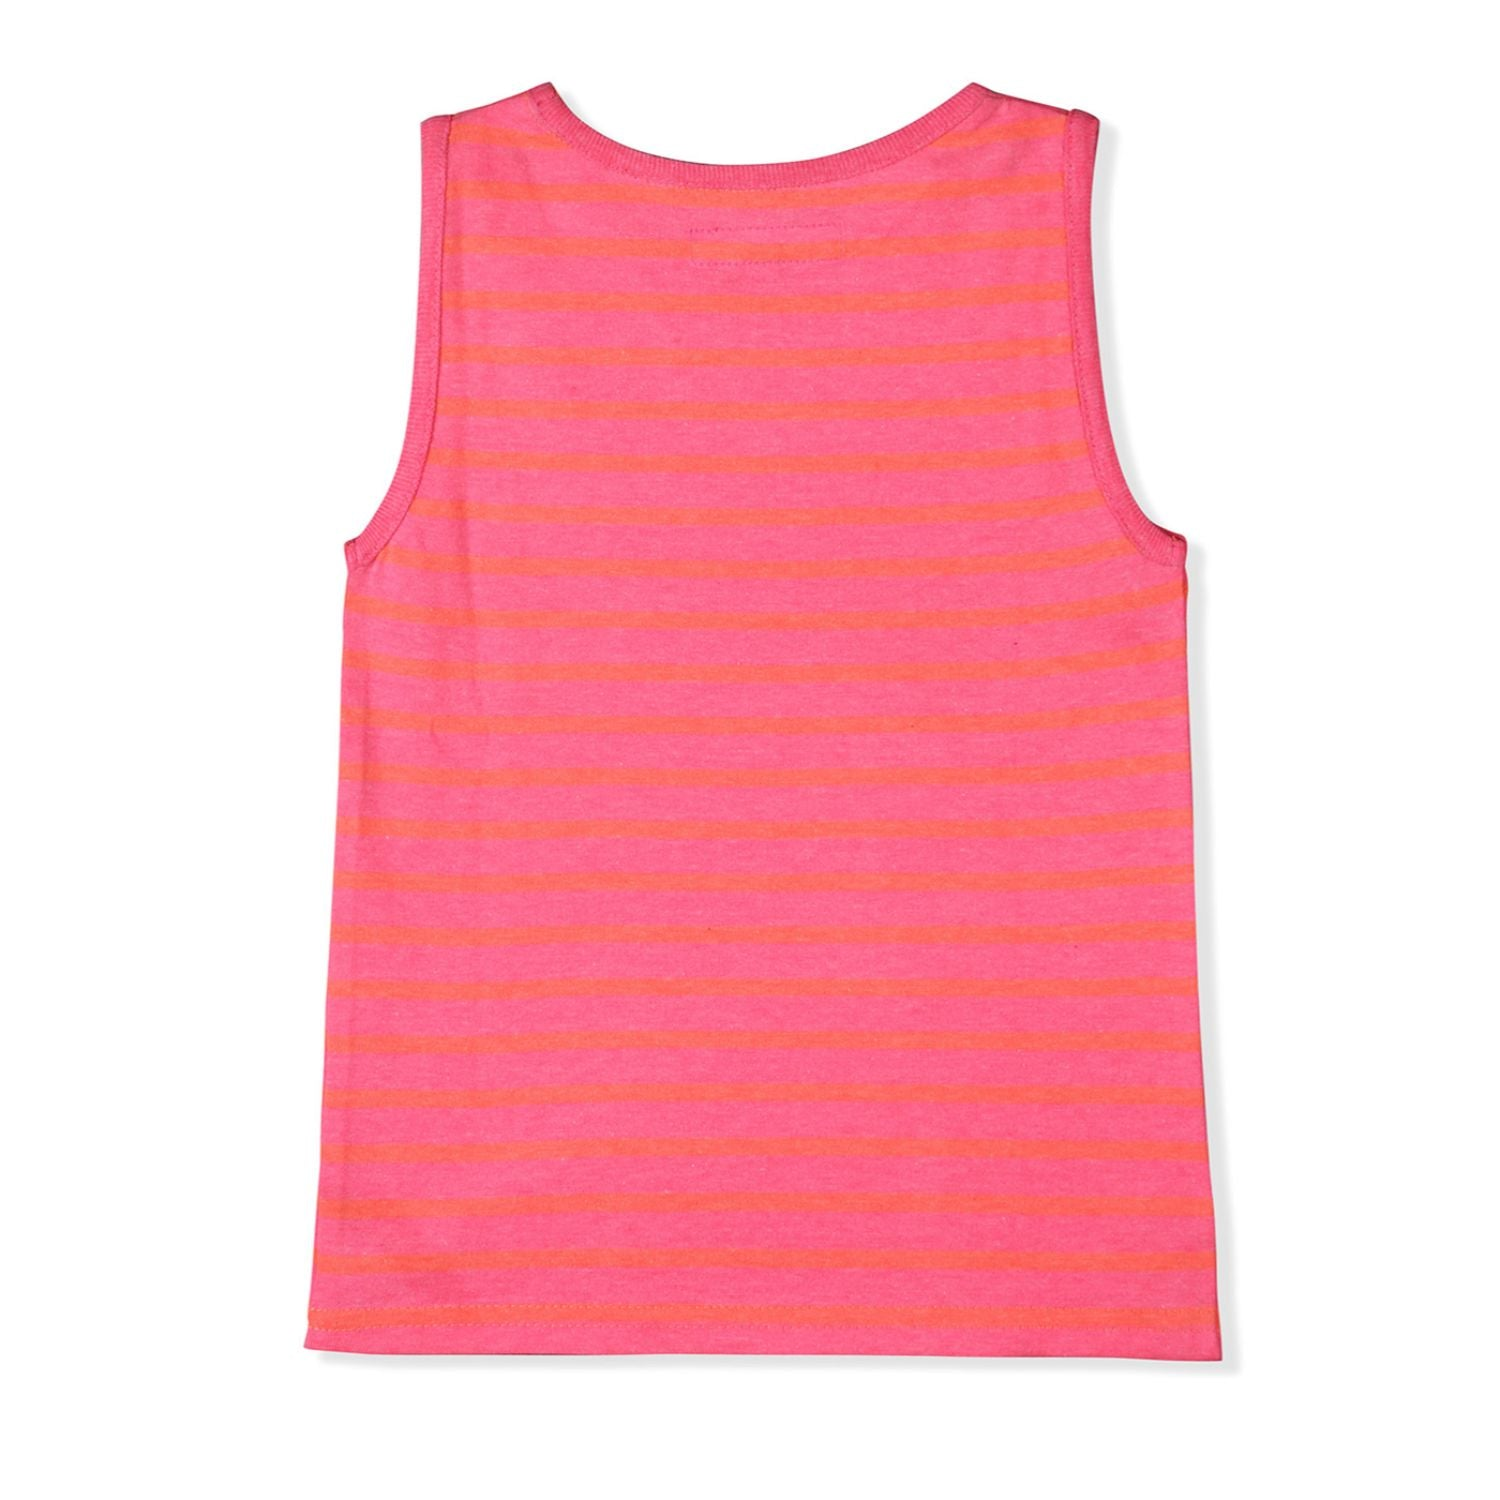 Adorable Vest Tee for kids